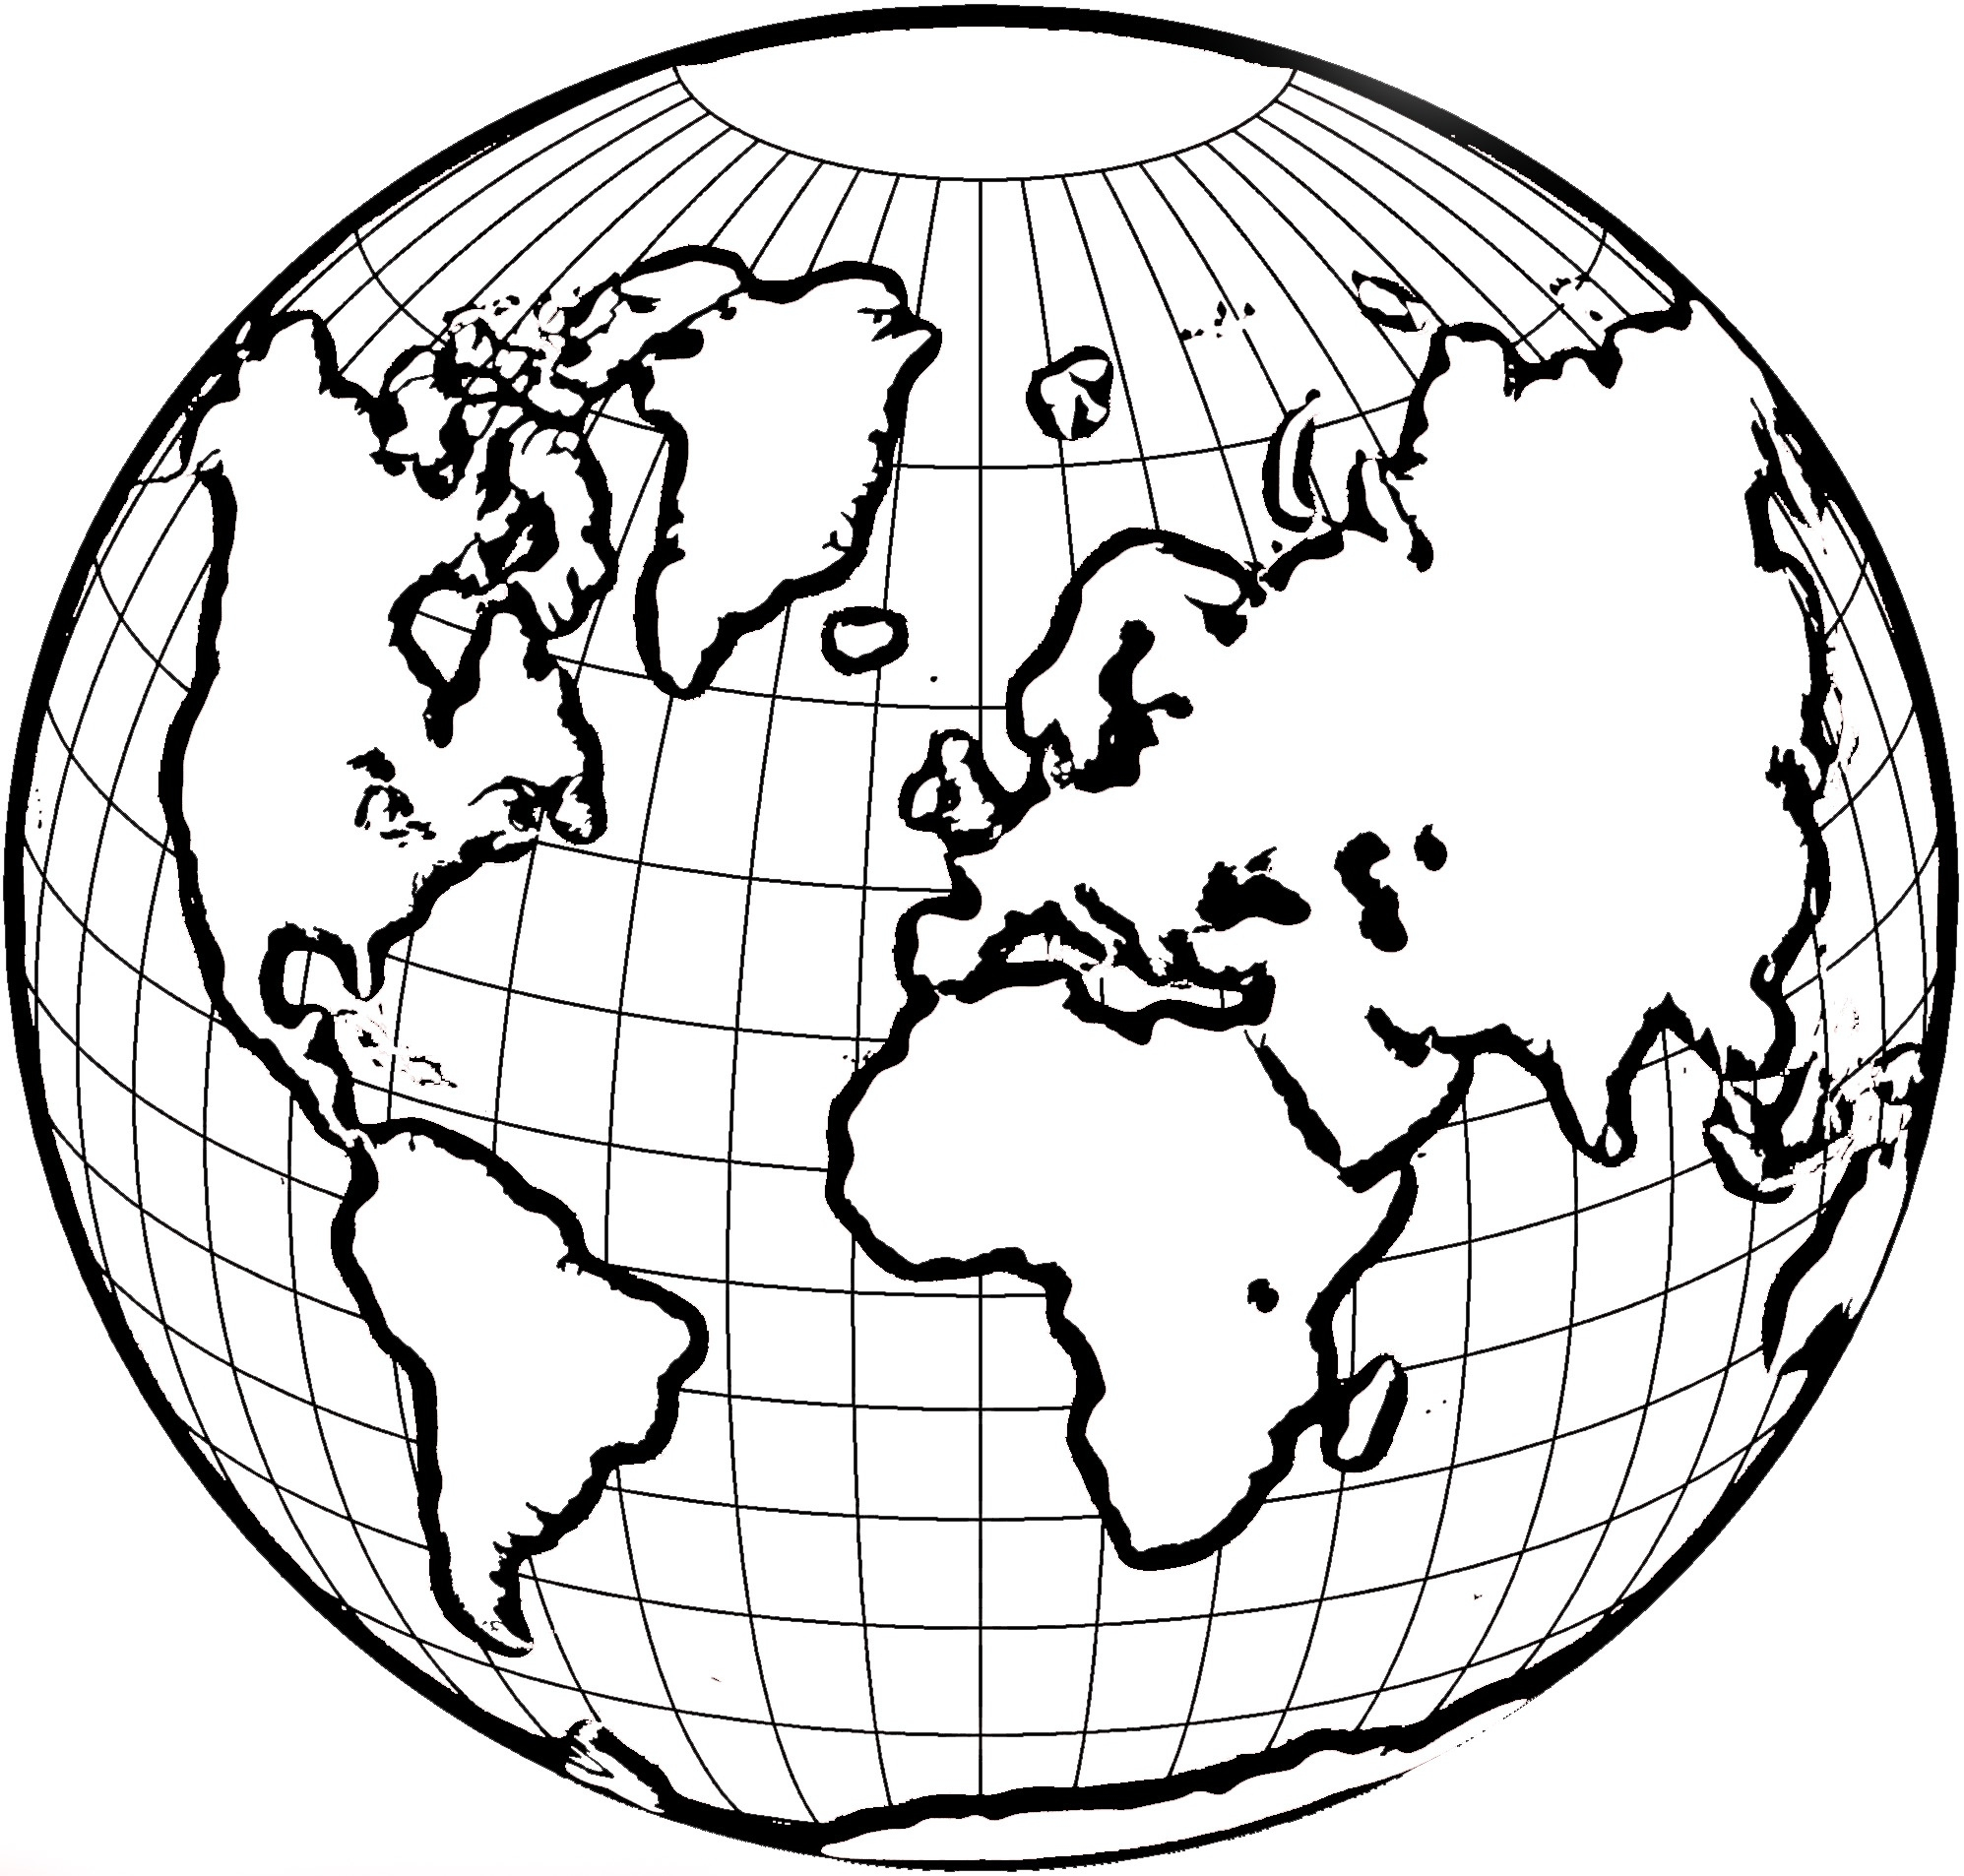 Globe clipart black and white image black and white download Globe clipart black and white for kids letters example jpg - ClipartPost image black and white download